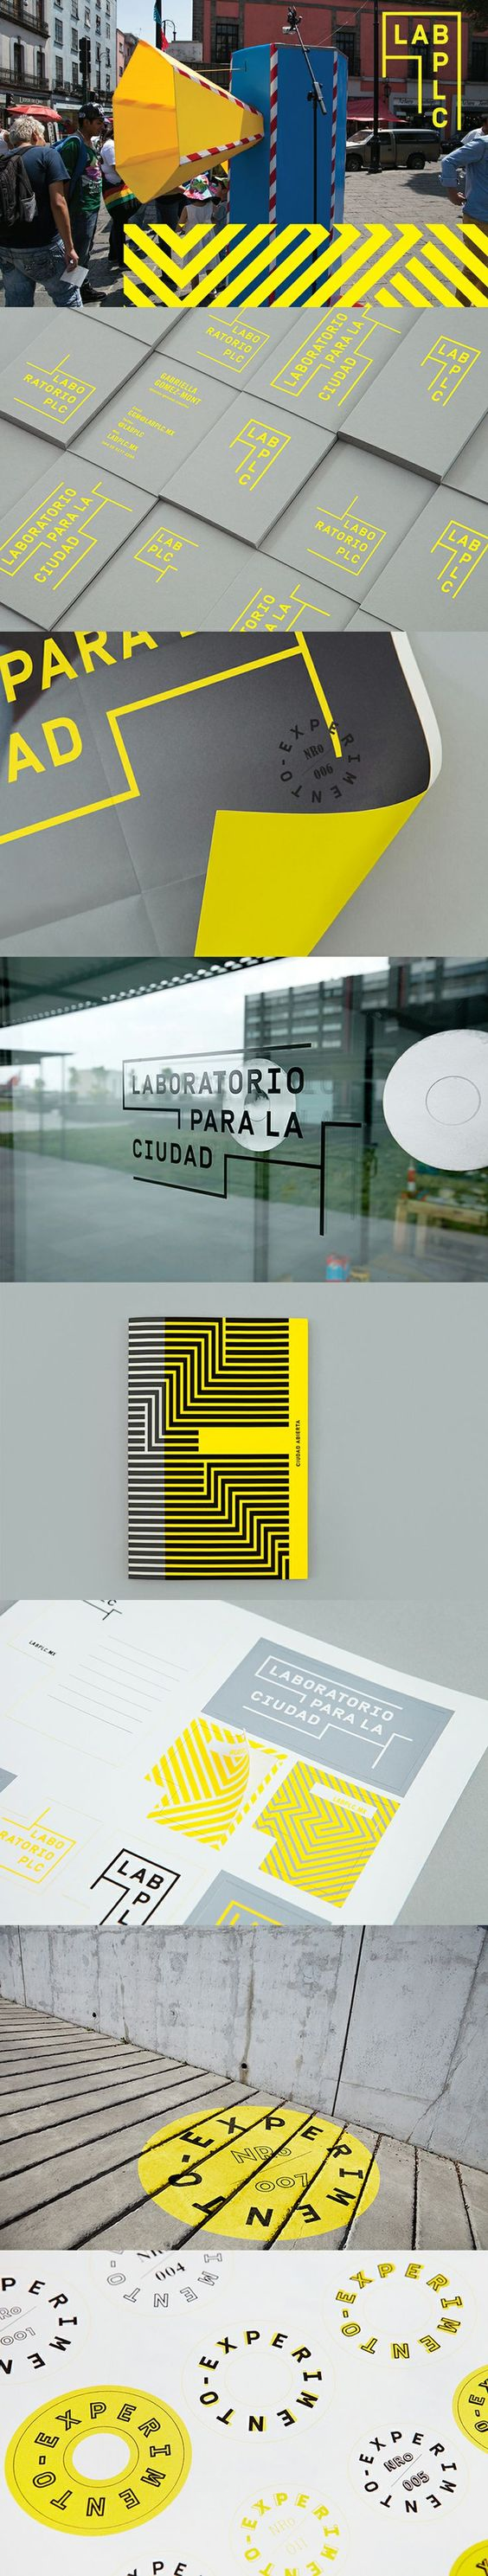 Lab Ciudad | identity design w/ environmental graphic design application | goes against conventions/expectations